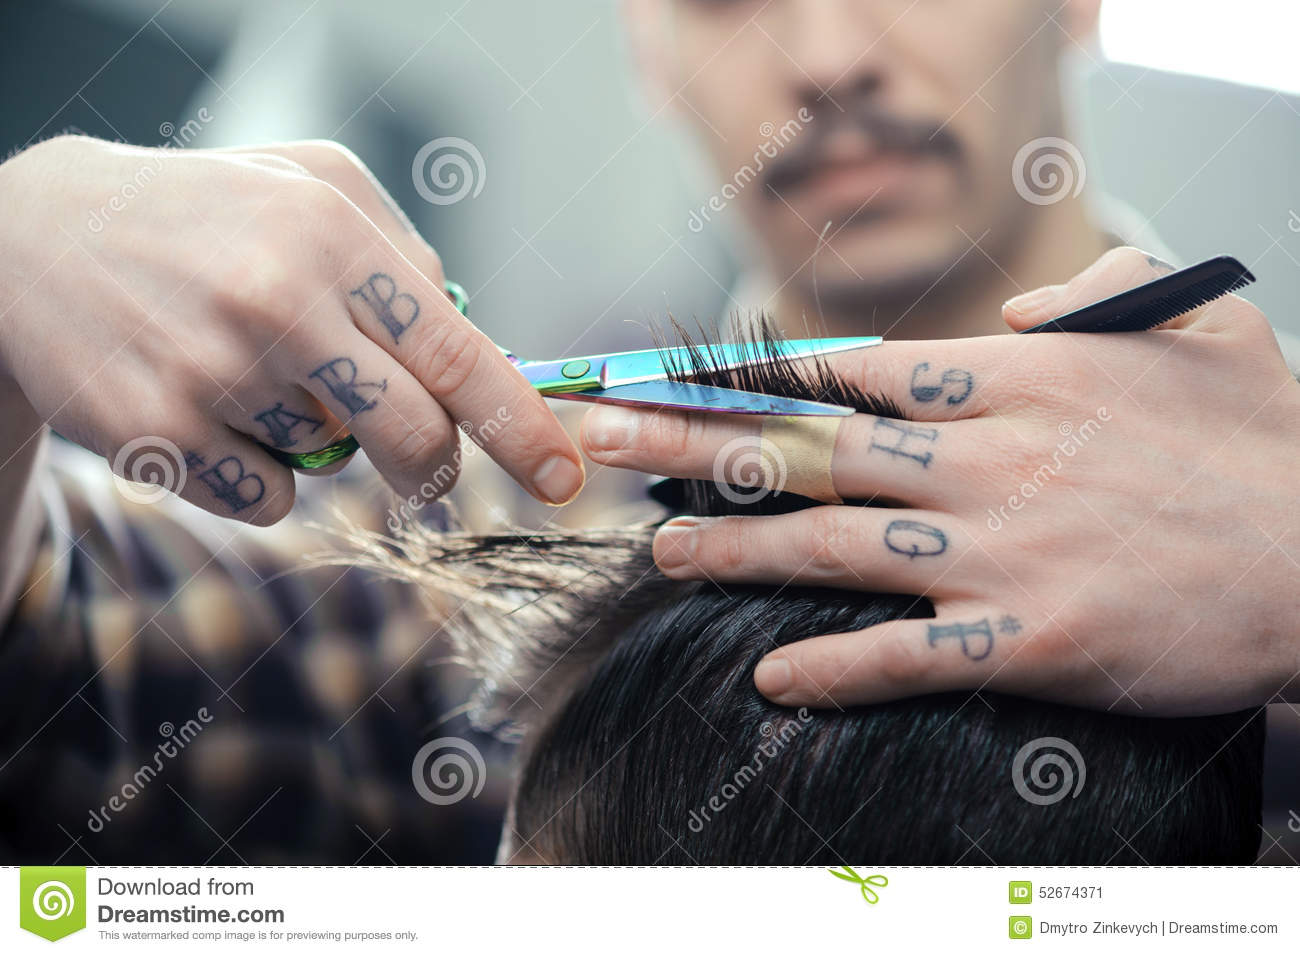 50cefd27e Closeup of barbers tattooed hands combing hair making haircut to a male  client